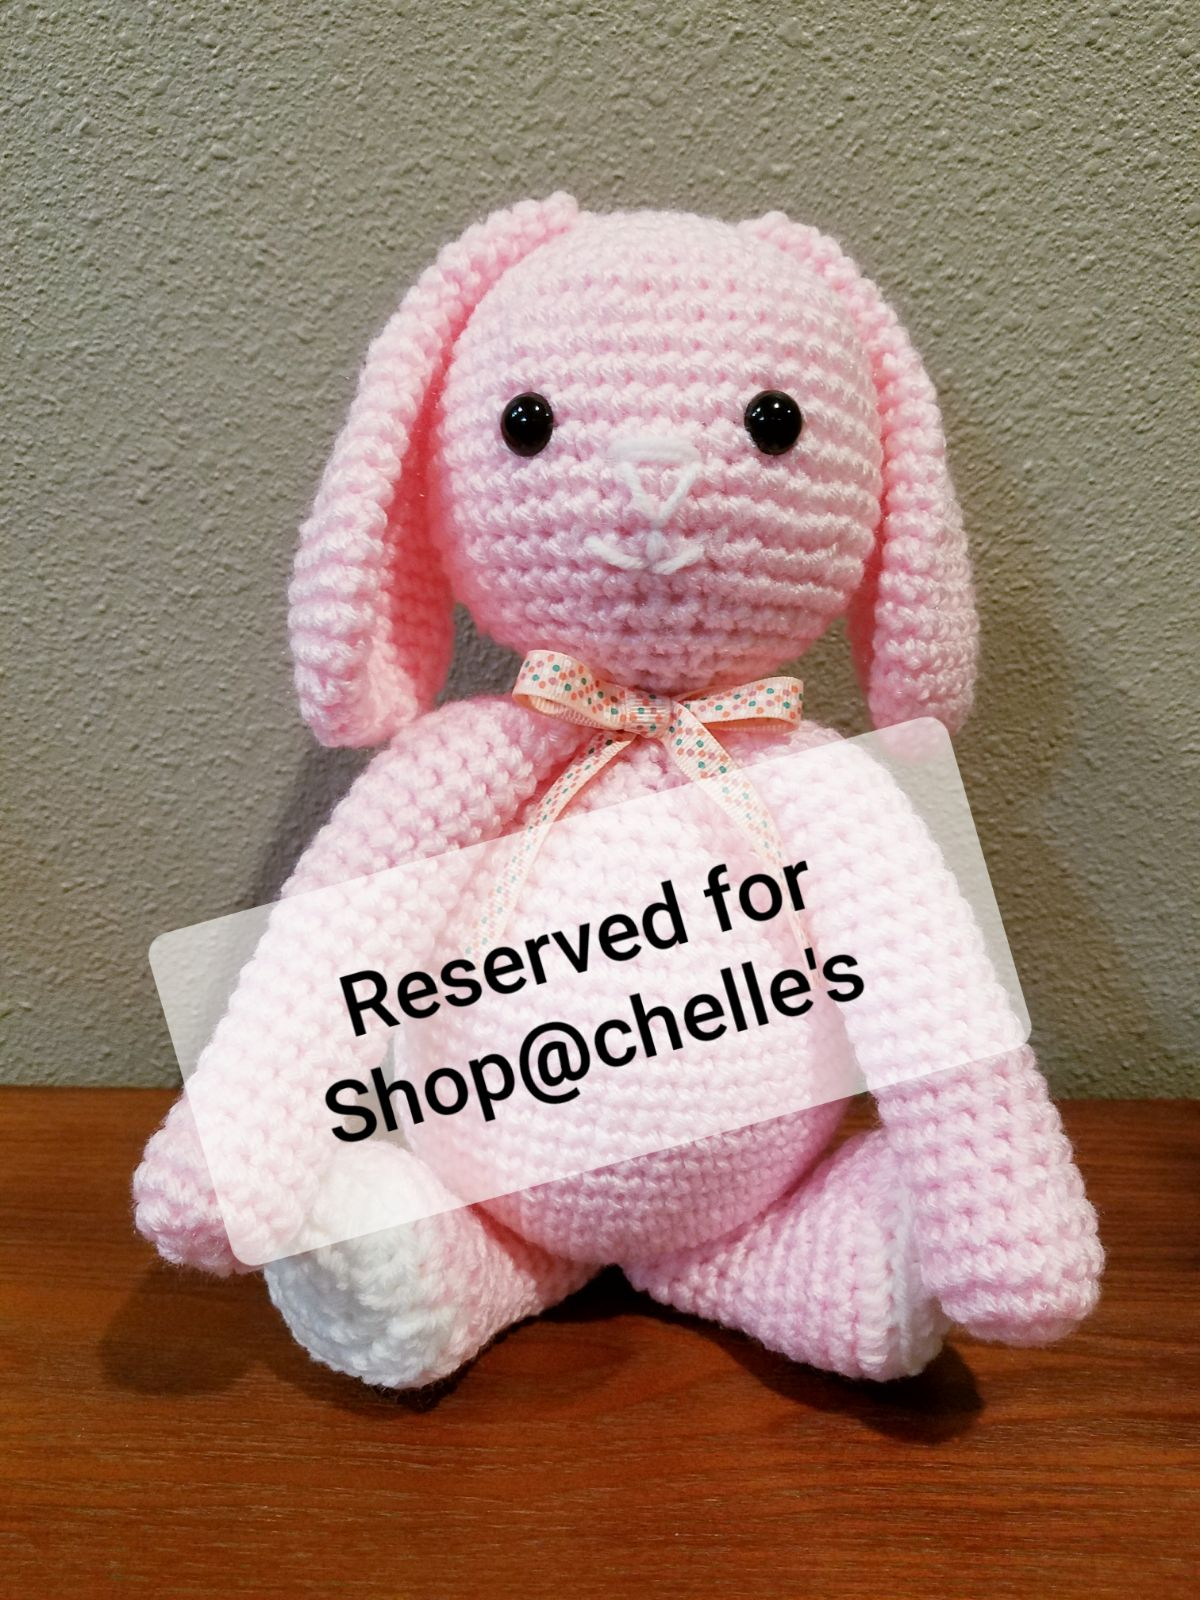 Reserved for Shop@Chelle's